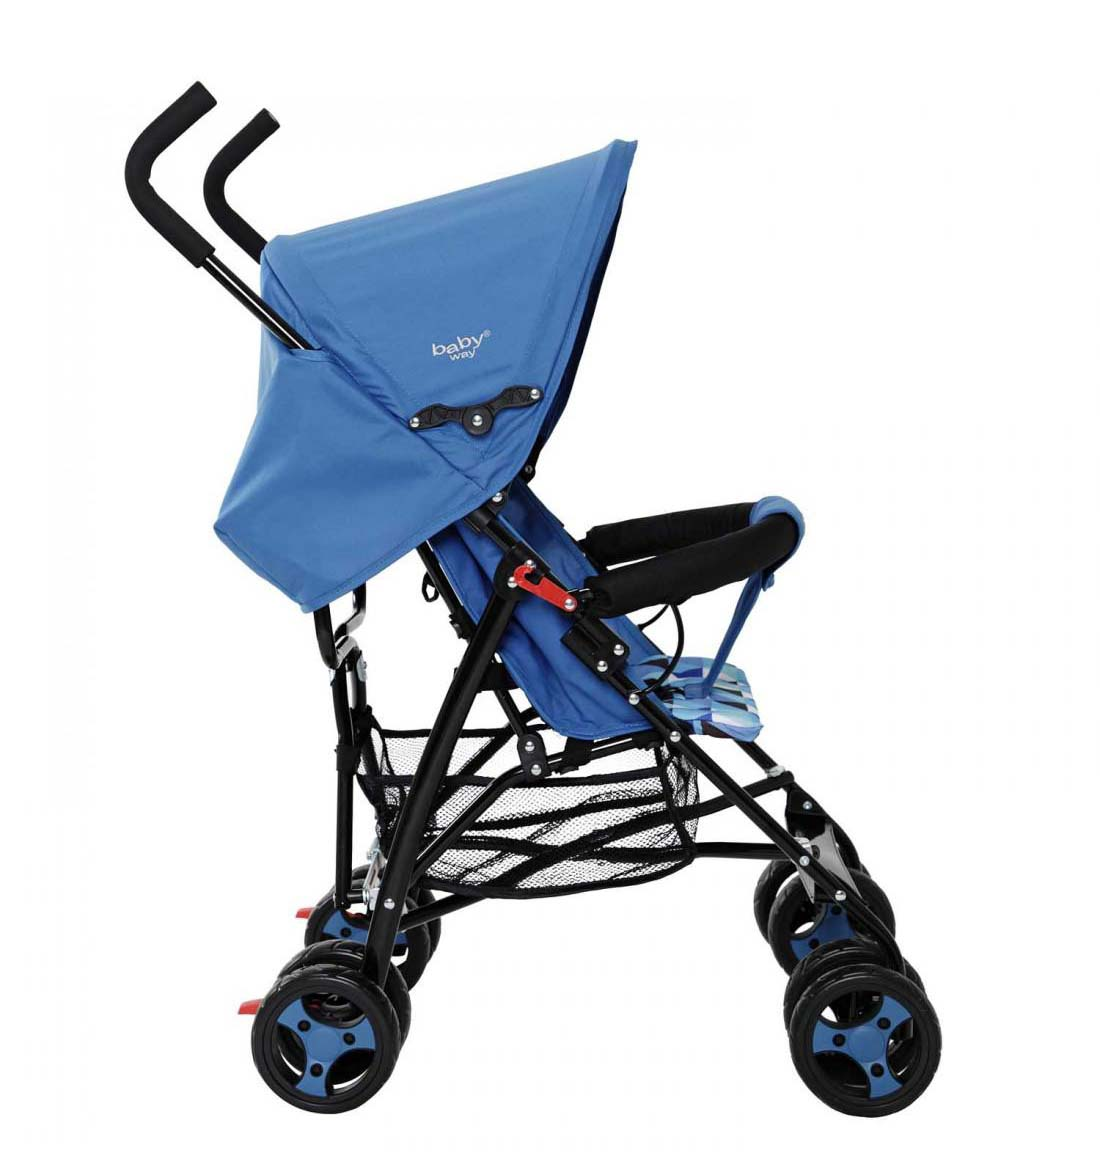 Coche Paragua Baby Way Azul Bw-102A17